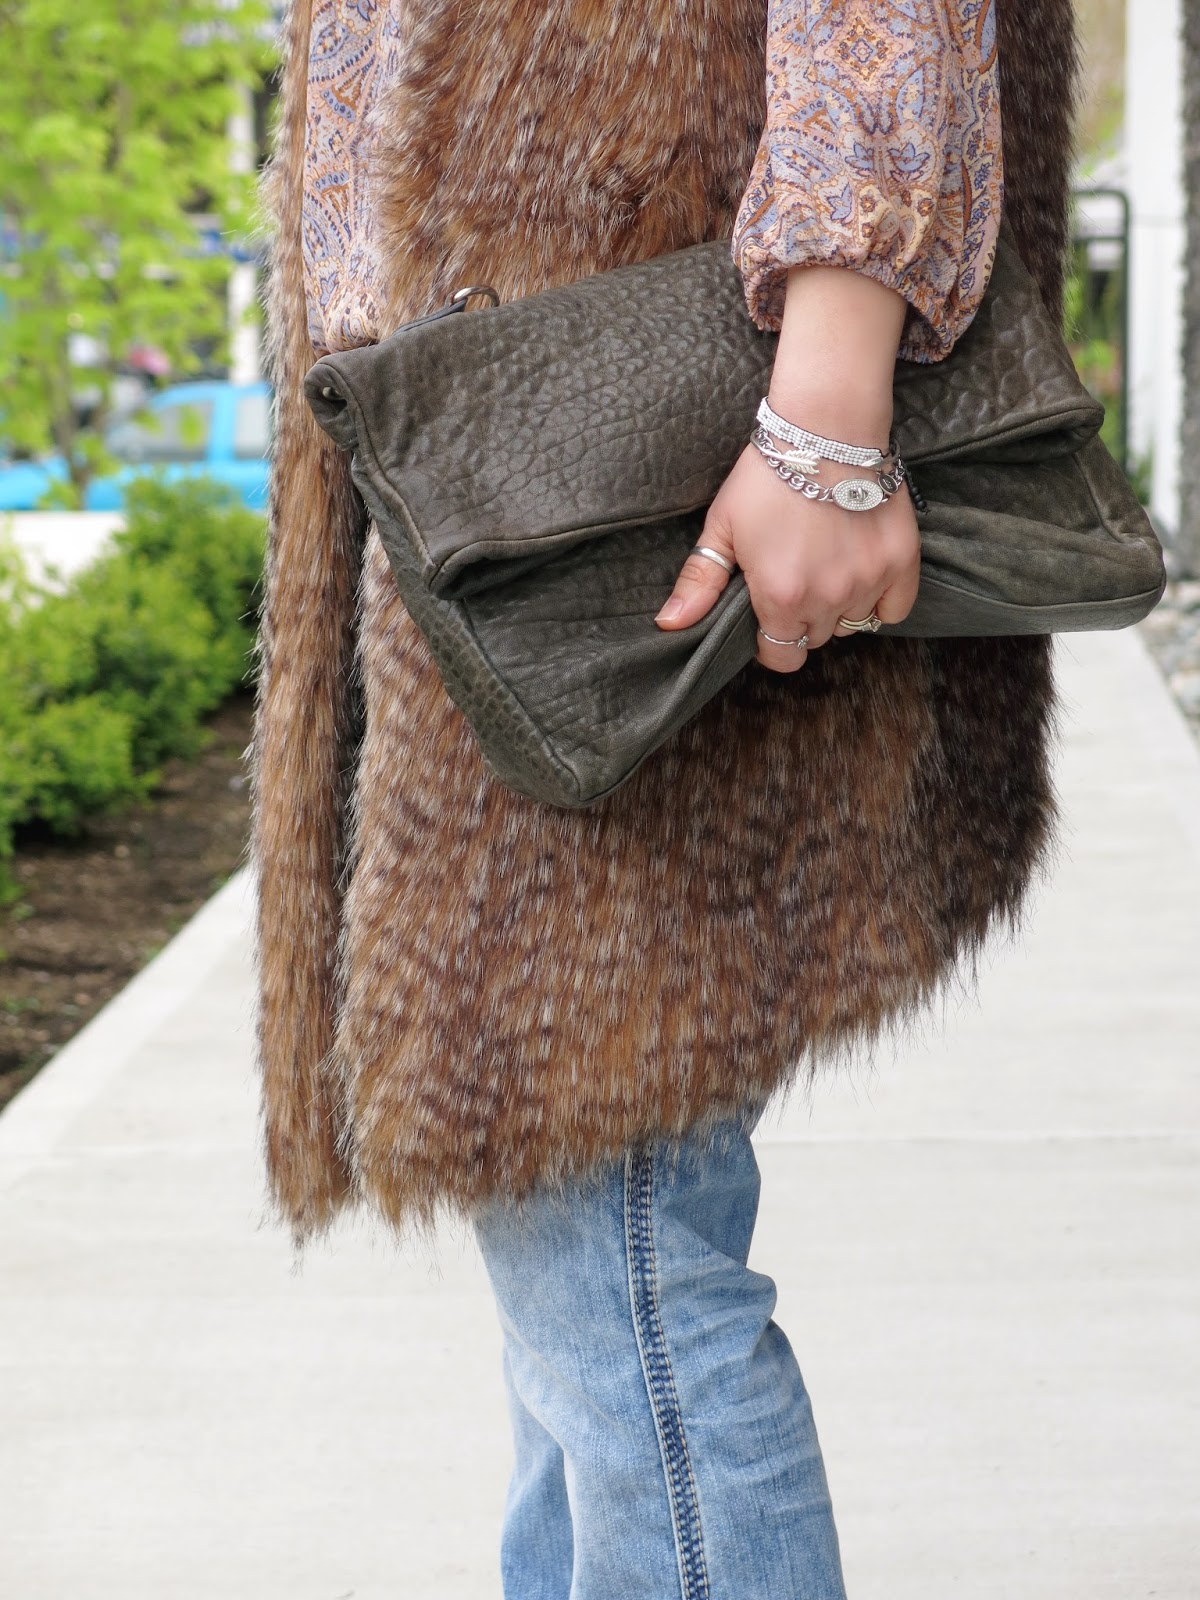 paisley blouse, furry vest, and accessories